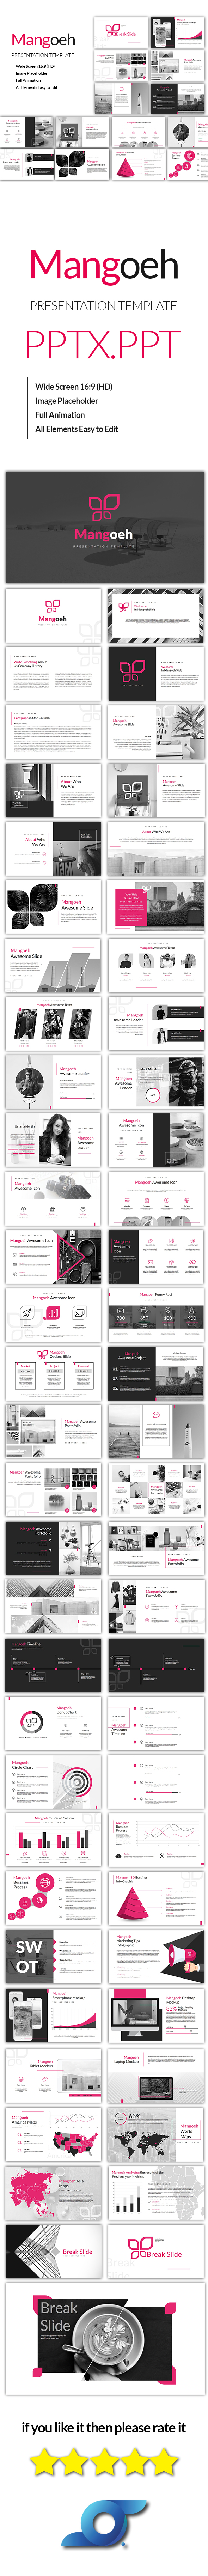 Mangoeh Powerpoint Template - PowerPoint Templates Presentation Templates